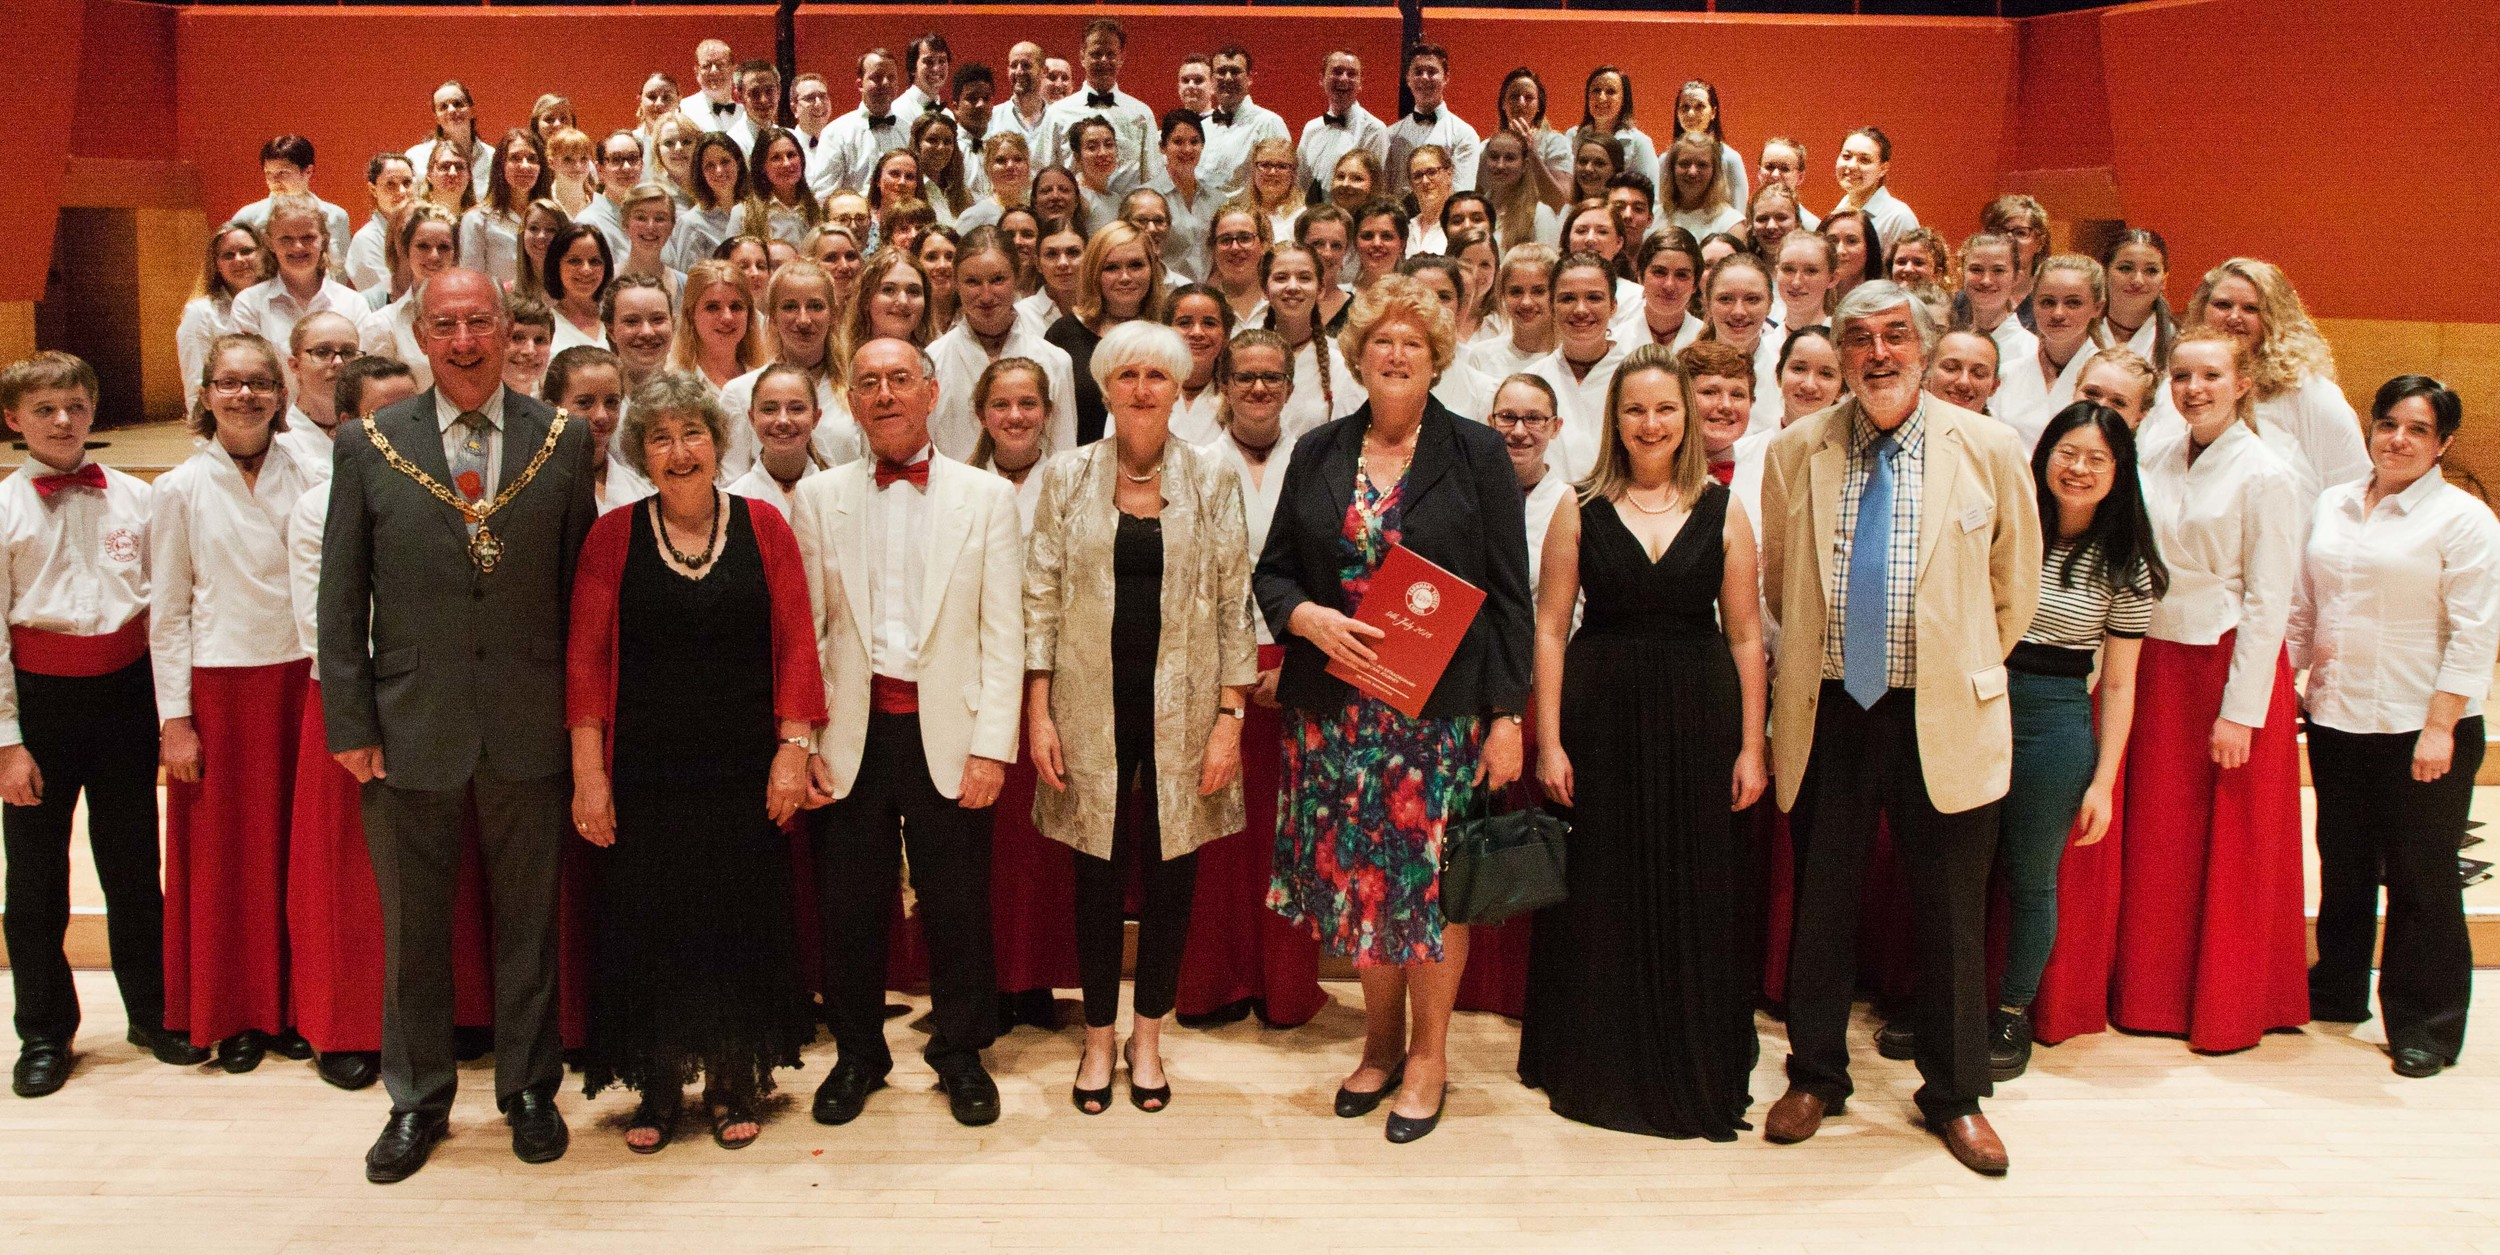 Farnham Youth Choir & Alumni Choir stand alongside the founders David & Gillian Victor-Smith (second and third left), accompanist Julia Freeman (centre), Choral Director - Joanna Tomlinson (second right)and FYC Chairman, Graham Noakes (right) at the Celebration Concert, The Anvil Basingstoke - July 2016.